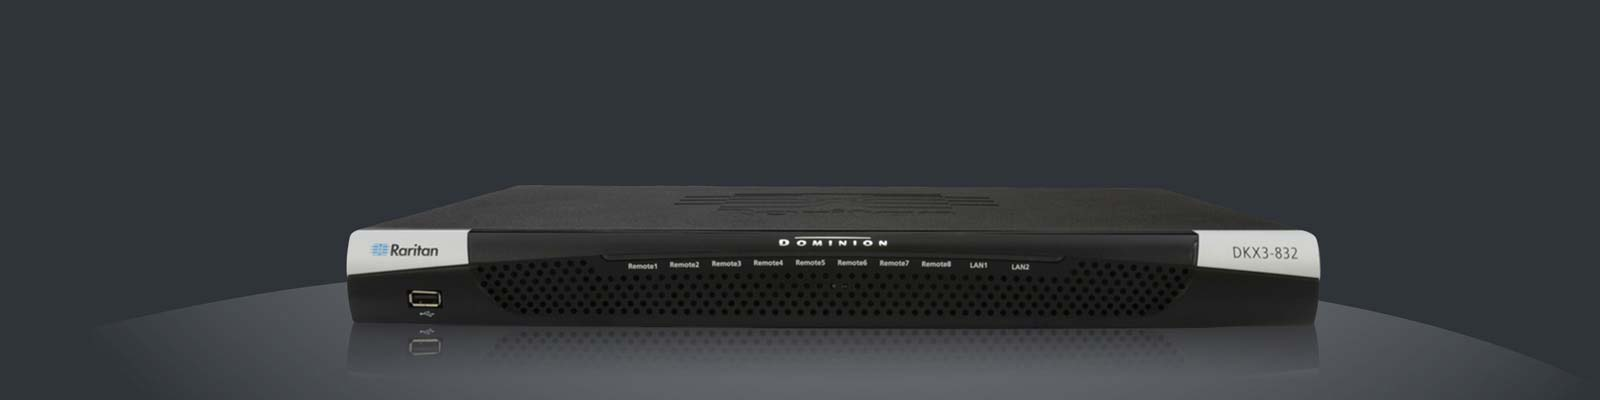 Raritan Dominion DKX3 32 Port & 64 Port VGA KVM Over IP Switch - Military Grade Security & Virtual USB Media support